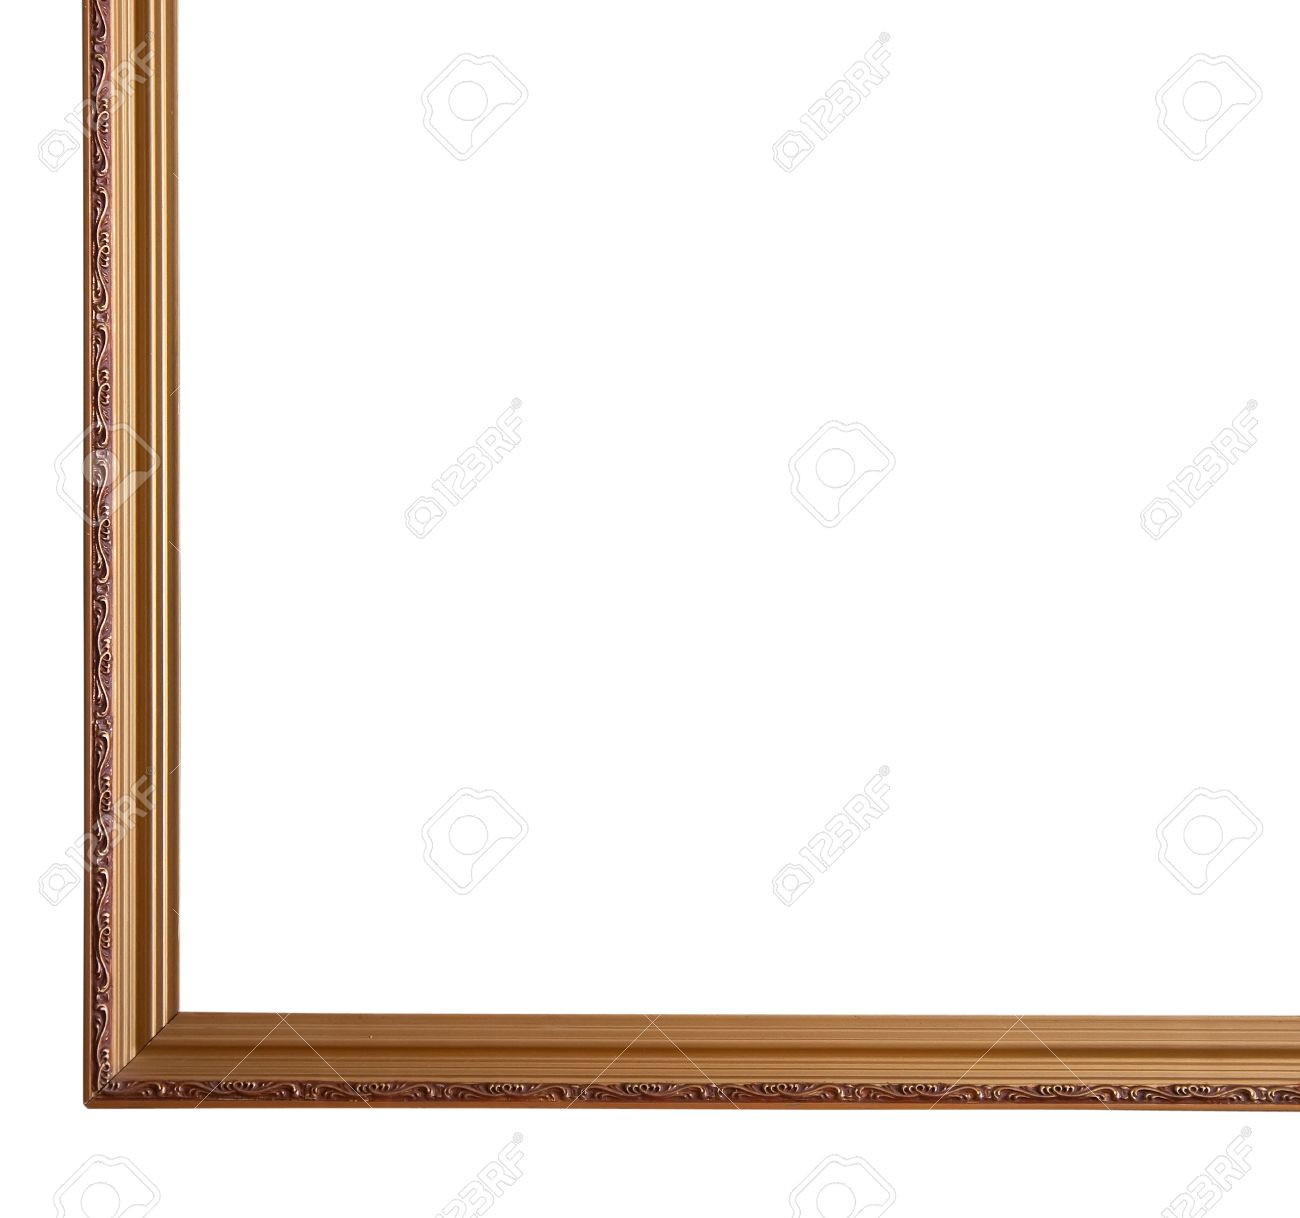 1300x1218 Isolated Thin Gold Border On White Background Stock Photo Picture